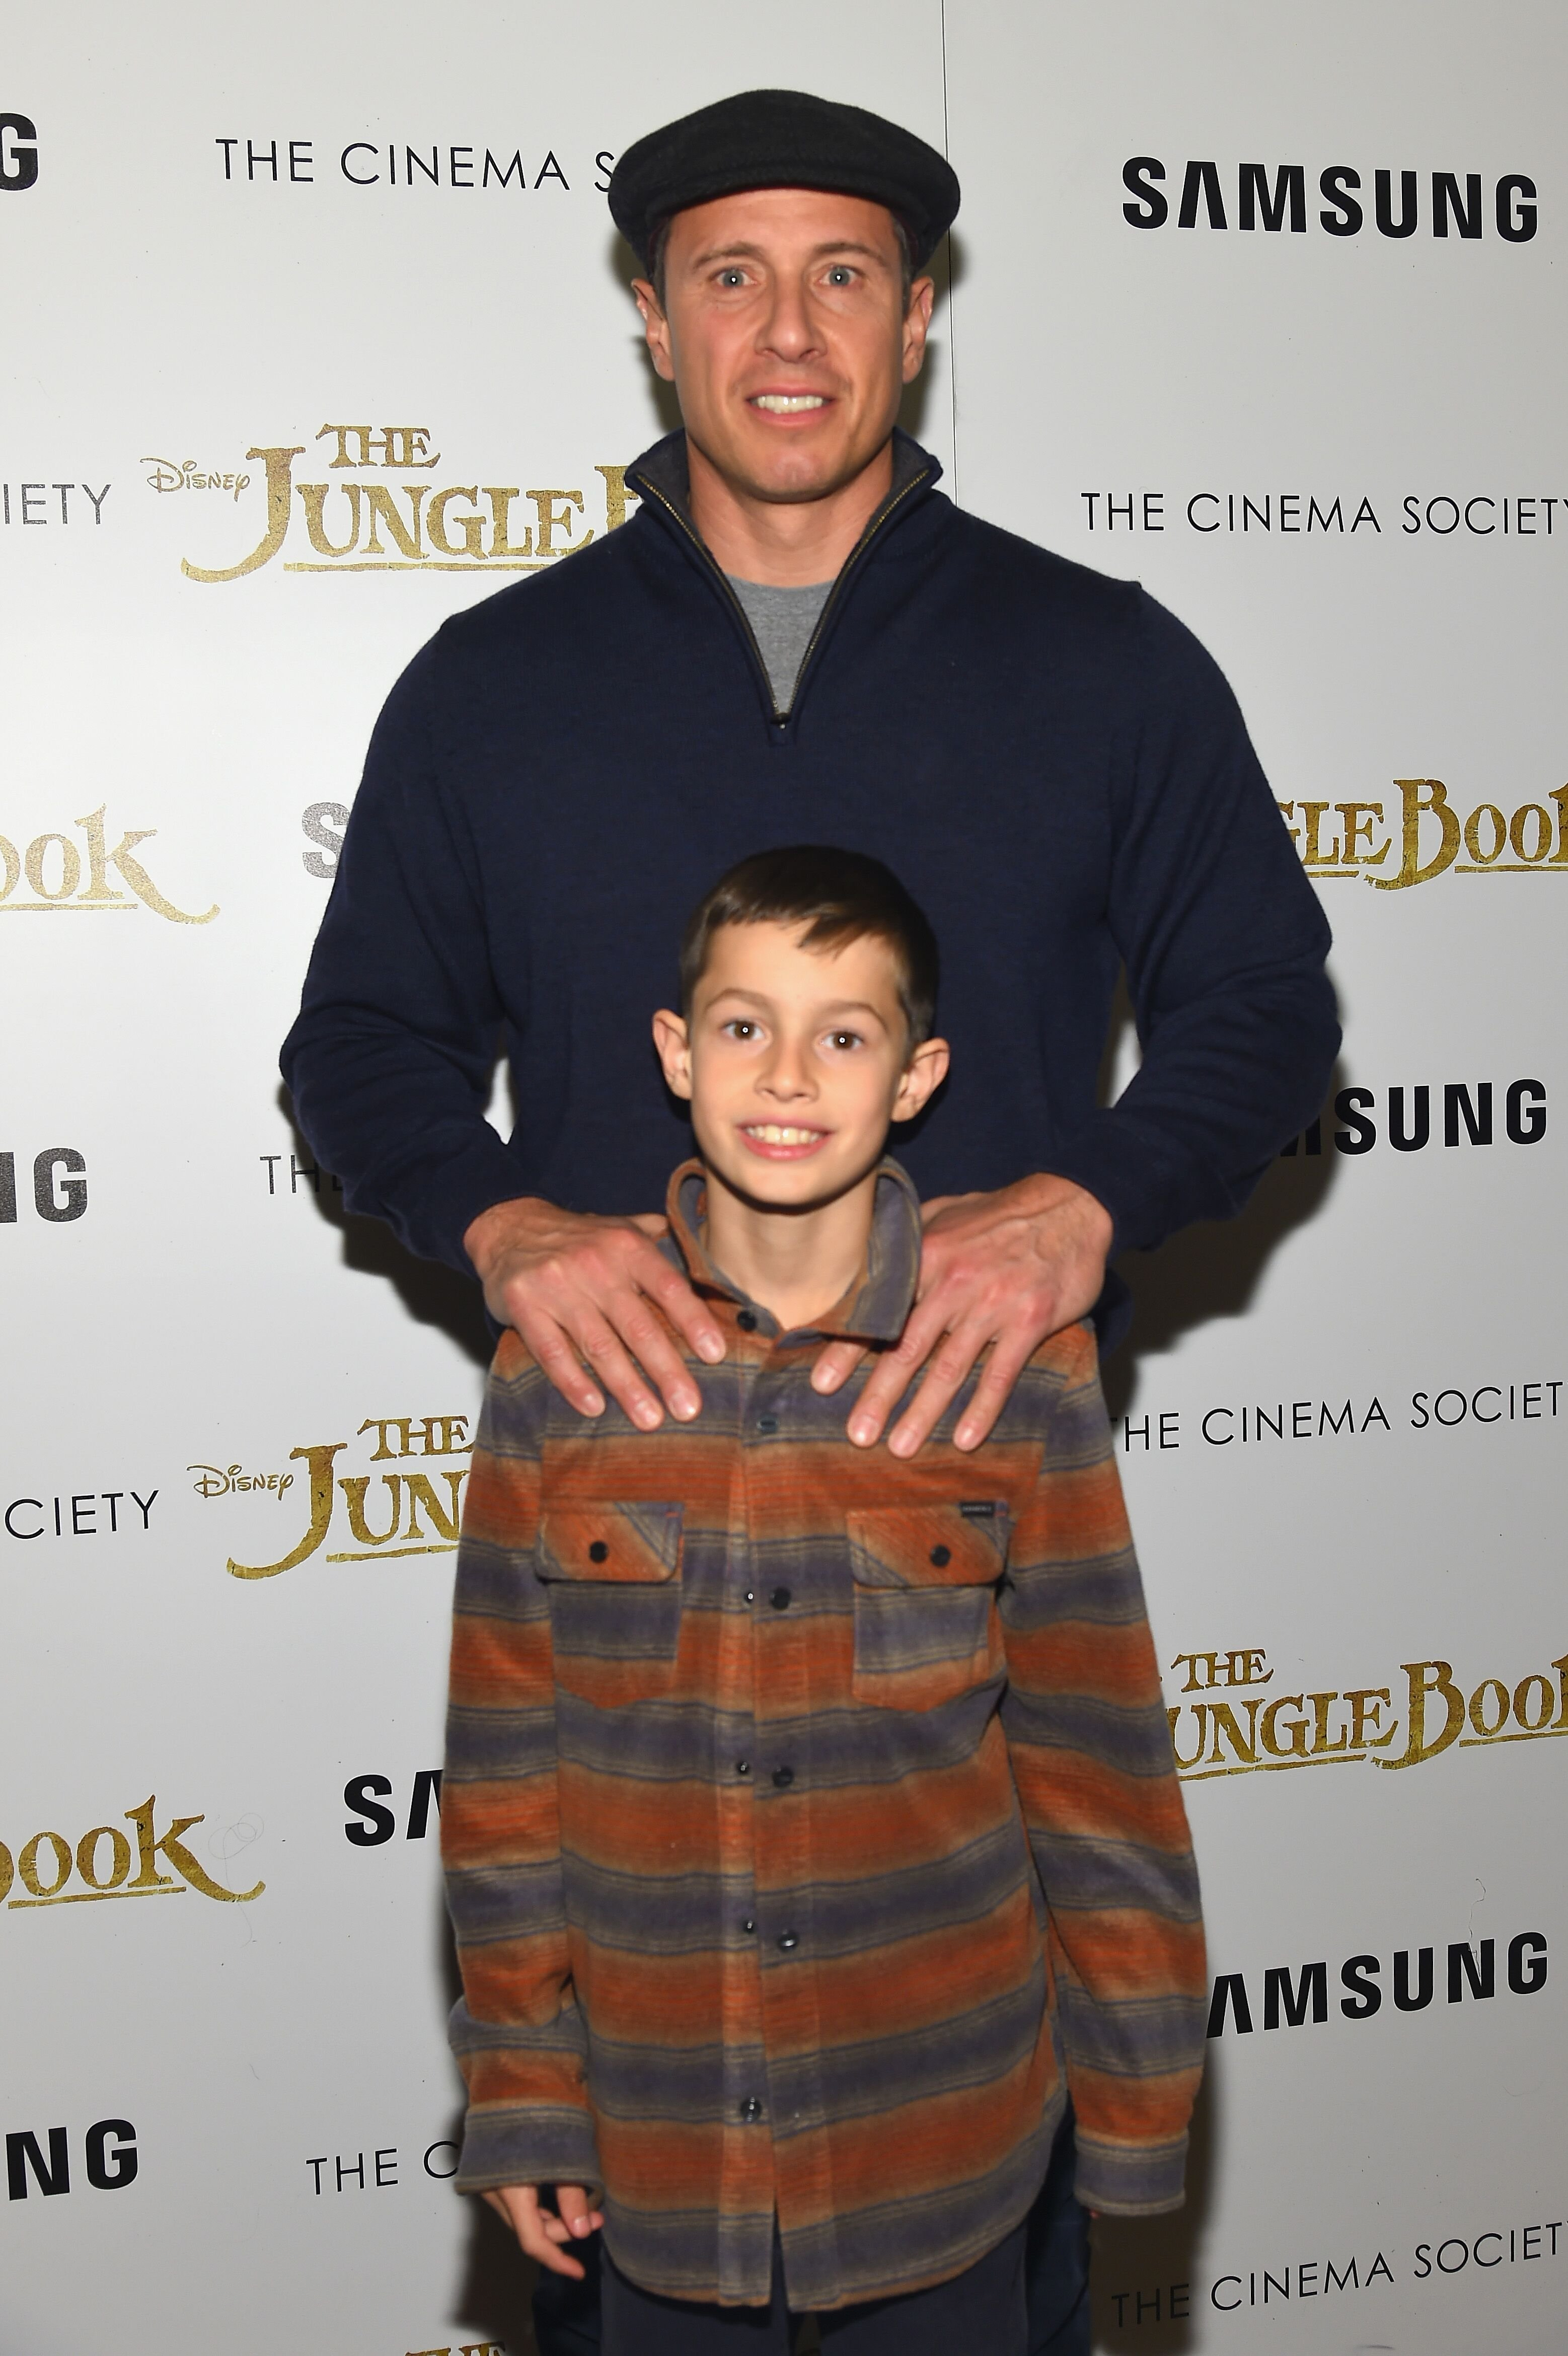 """Chris and son Mario Cuomo at the screening of """"The Jungle Book"""" at AMC Empire 25 theater on April 7, 2016, in New York City 